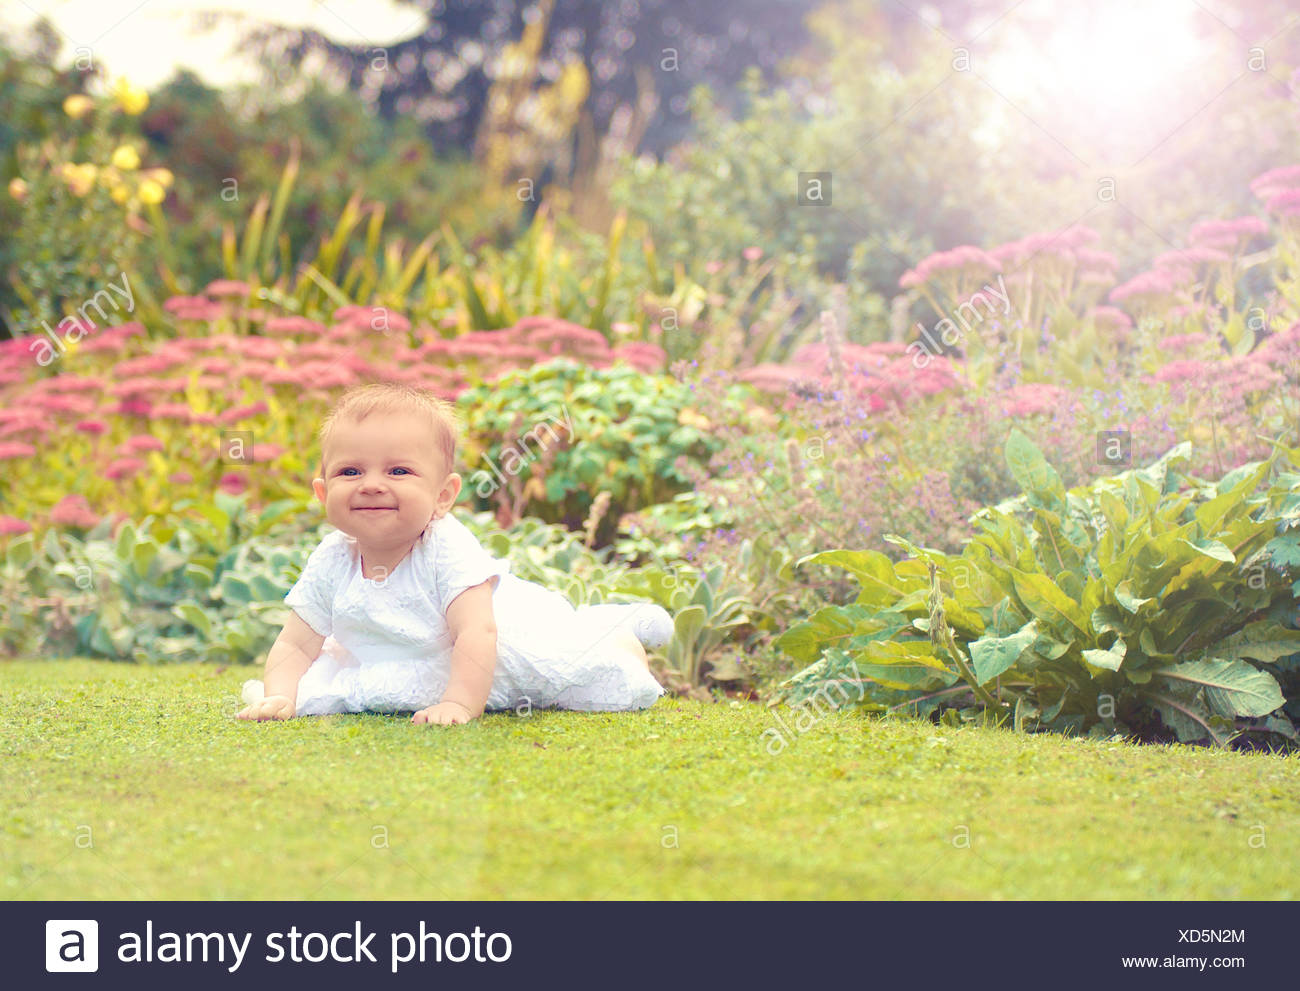 Baby girl (6-11 months) starting to crawl in park - Stock Image